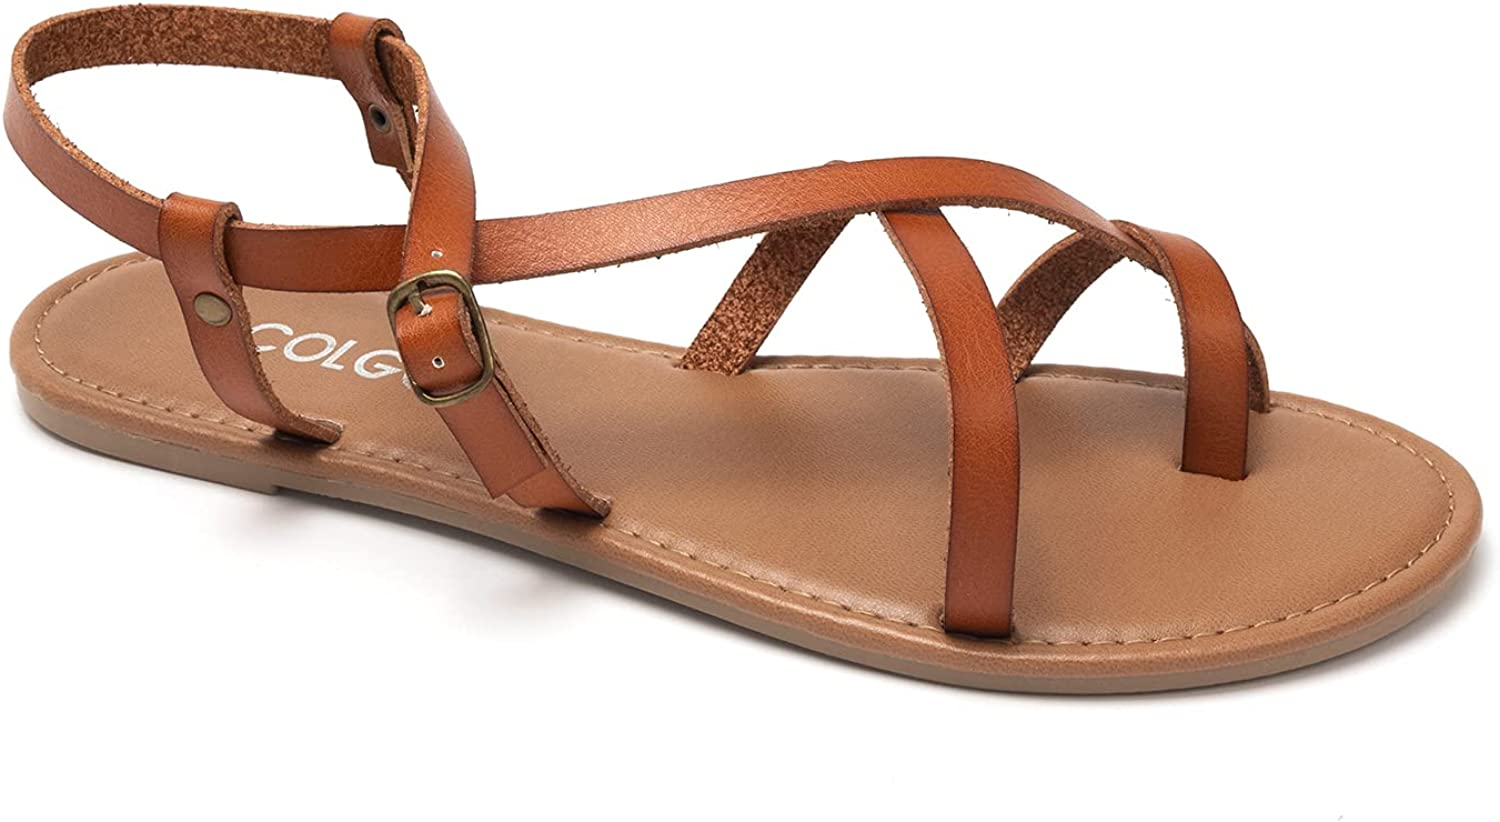 COLGO Women's Summer Limited Special Price 40% OFF Cheap Sale Strappy Flat Adjustable Casual Fis Sandals